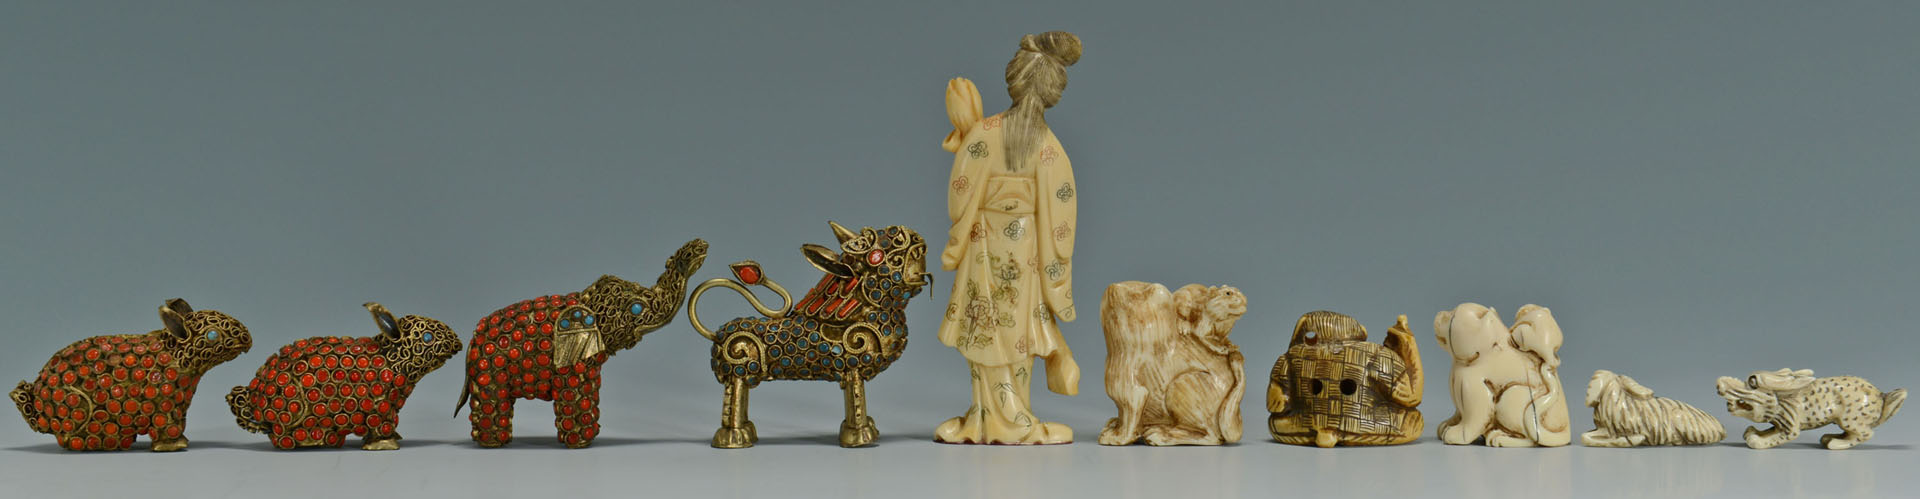 Lot 227: Small Chinese Filigree and Ivory Items, 10 pcs